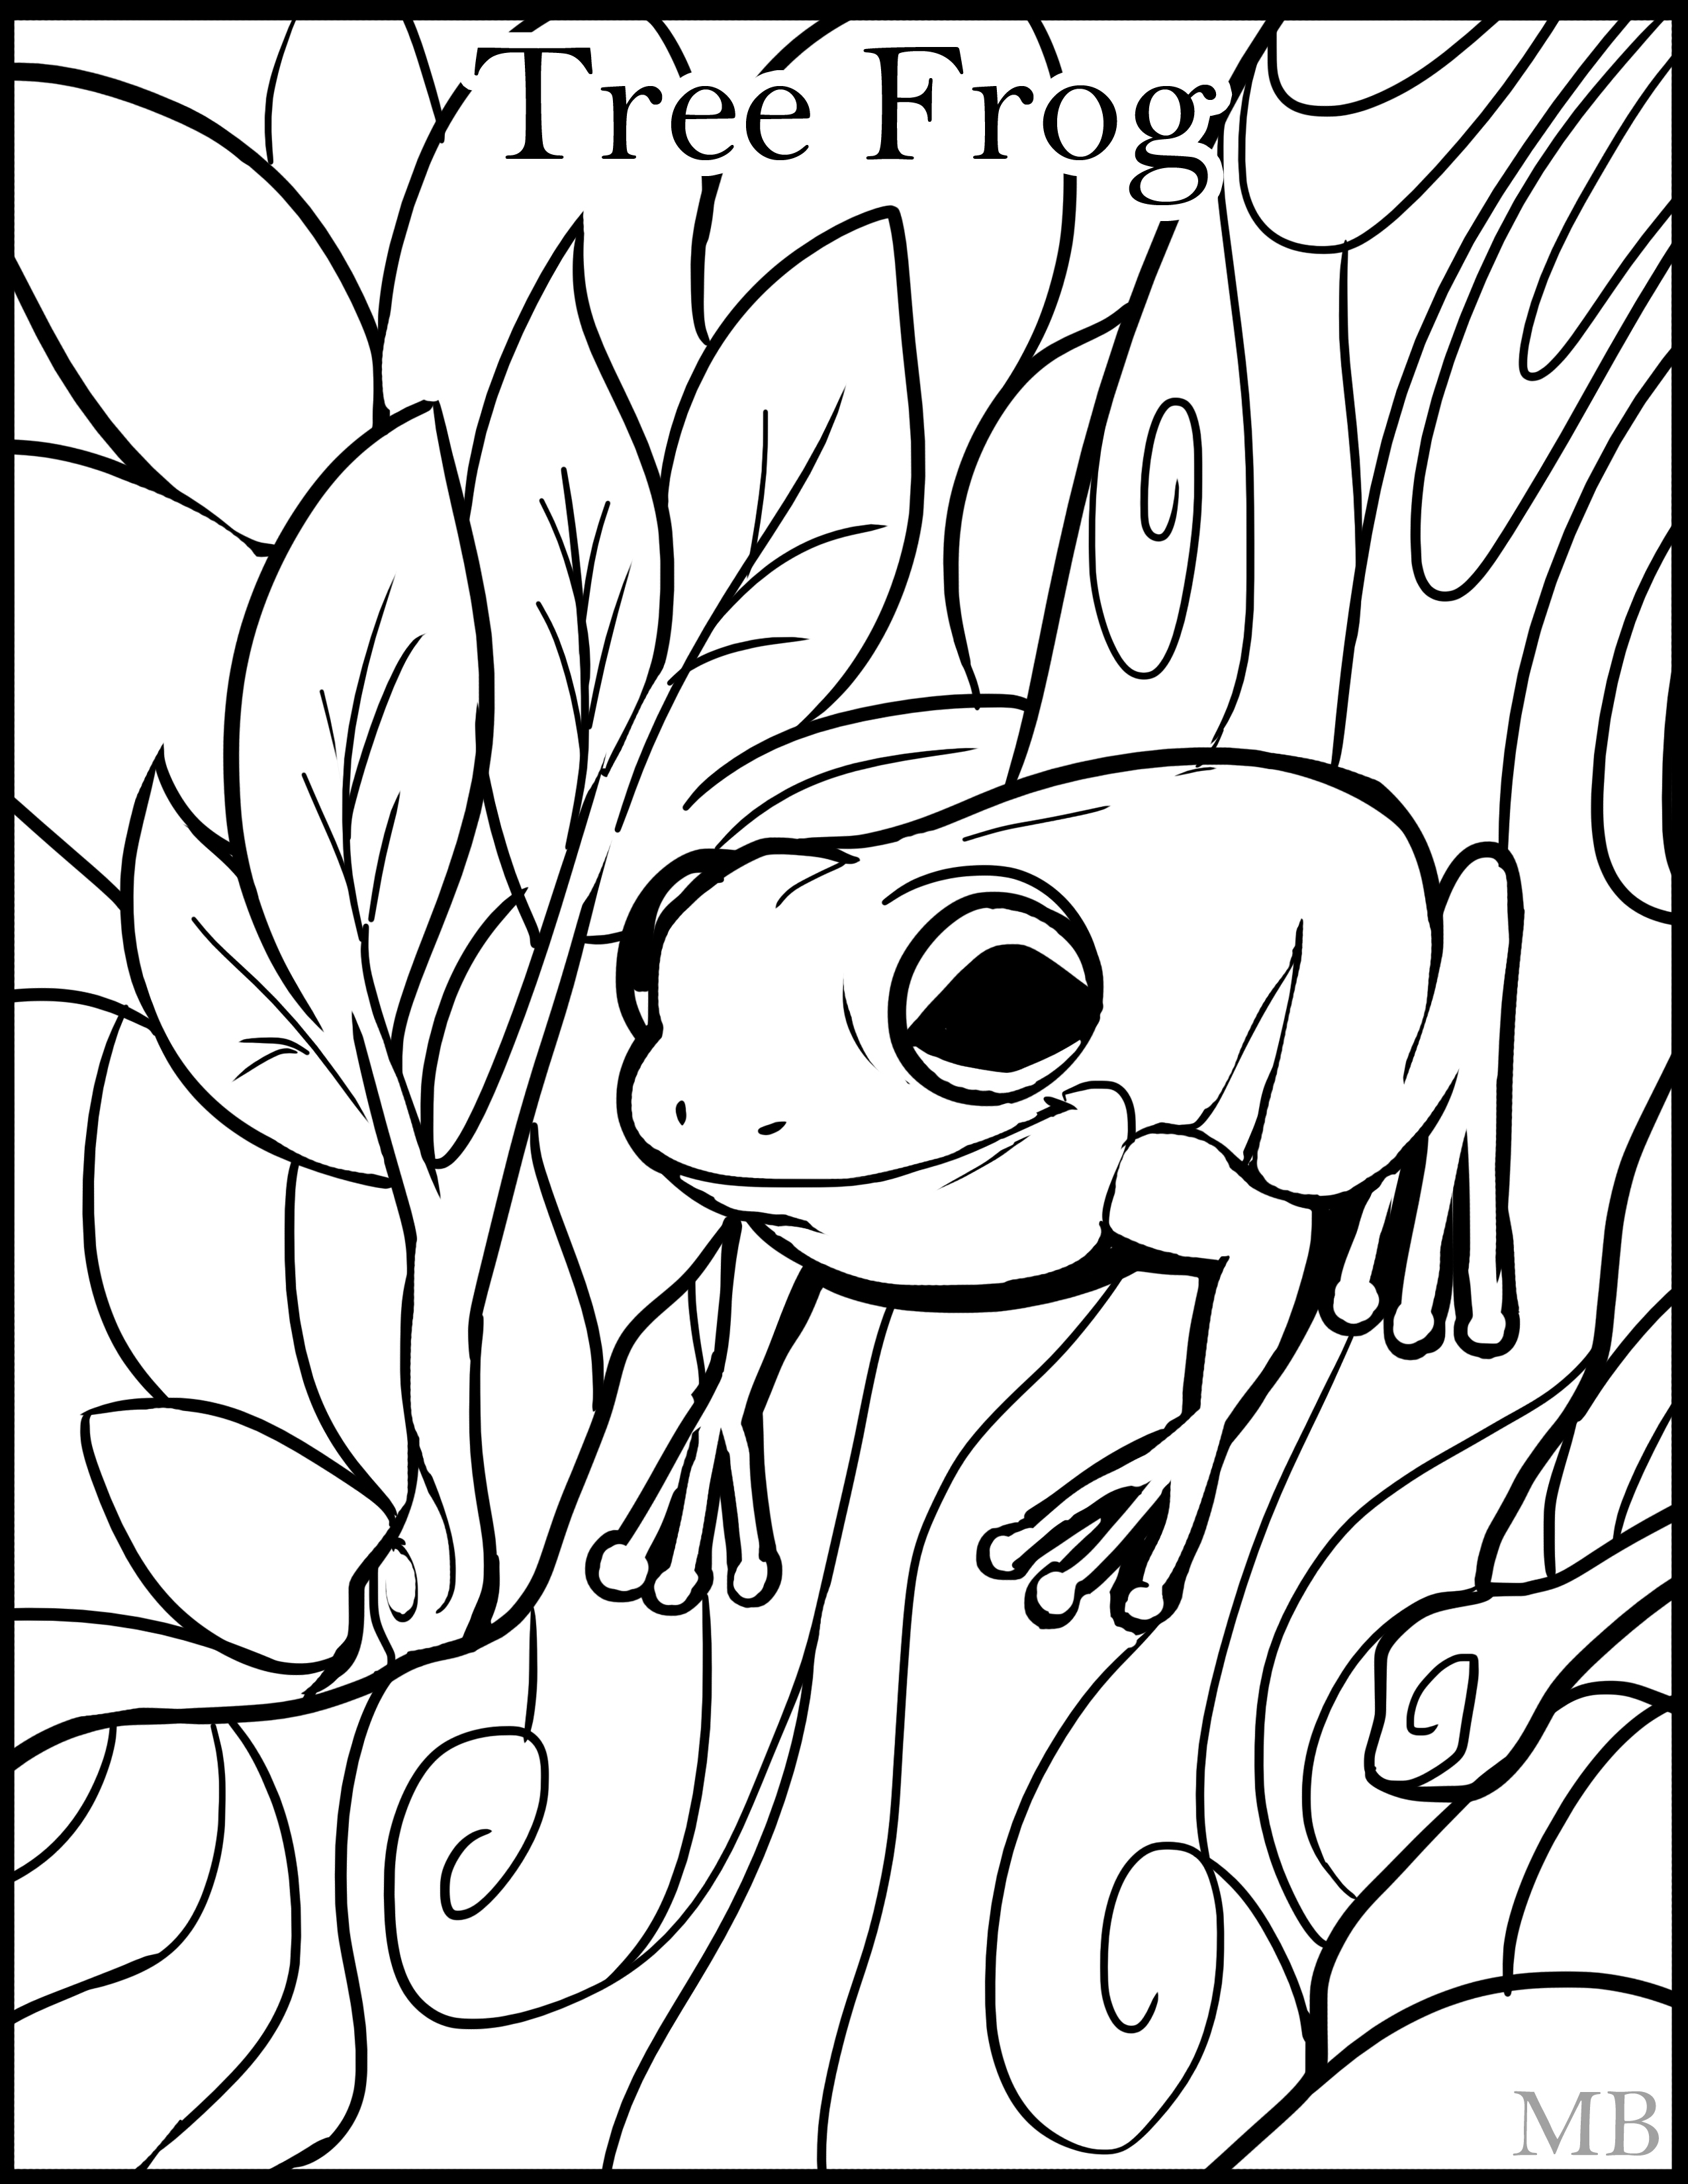 frog coloring book full size coloring pages for adults at getcoloringscom coloring frog book